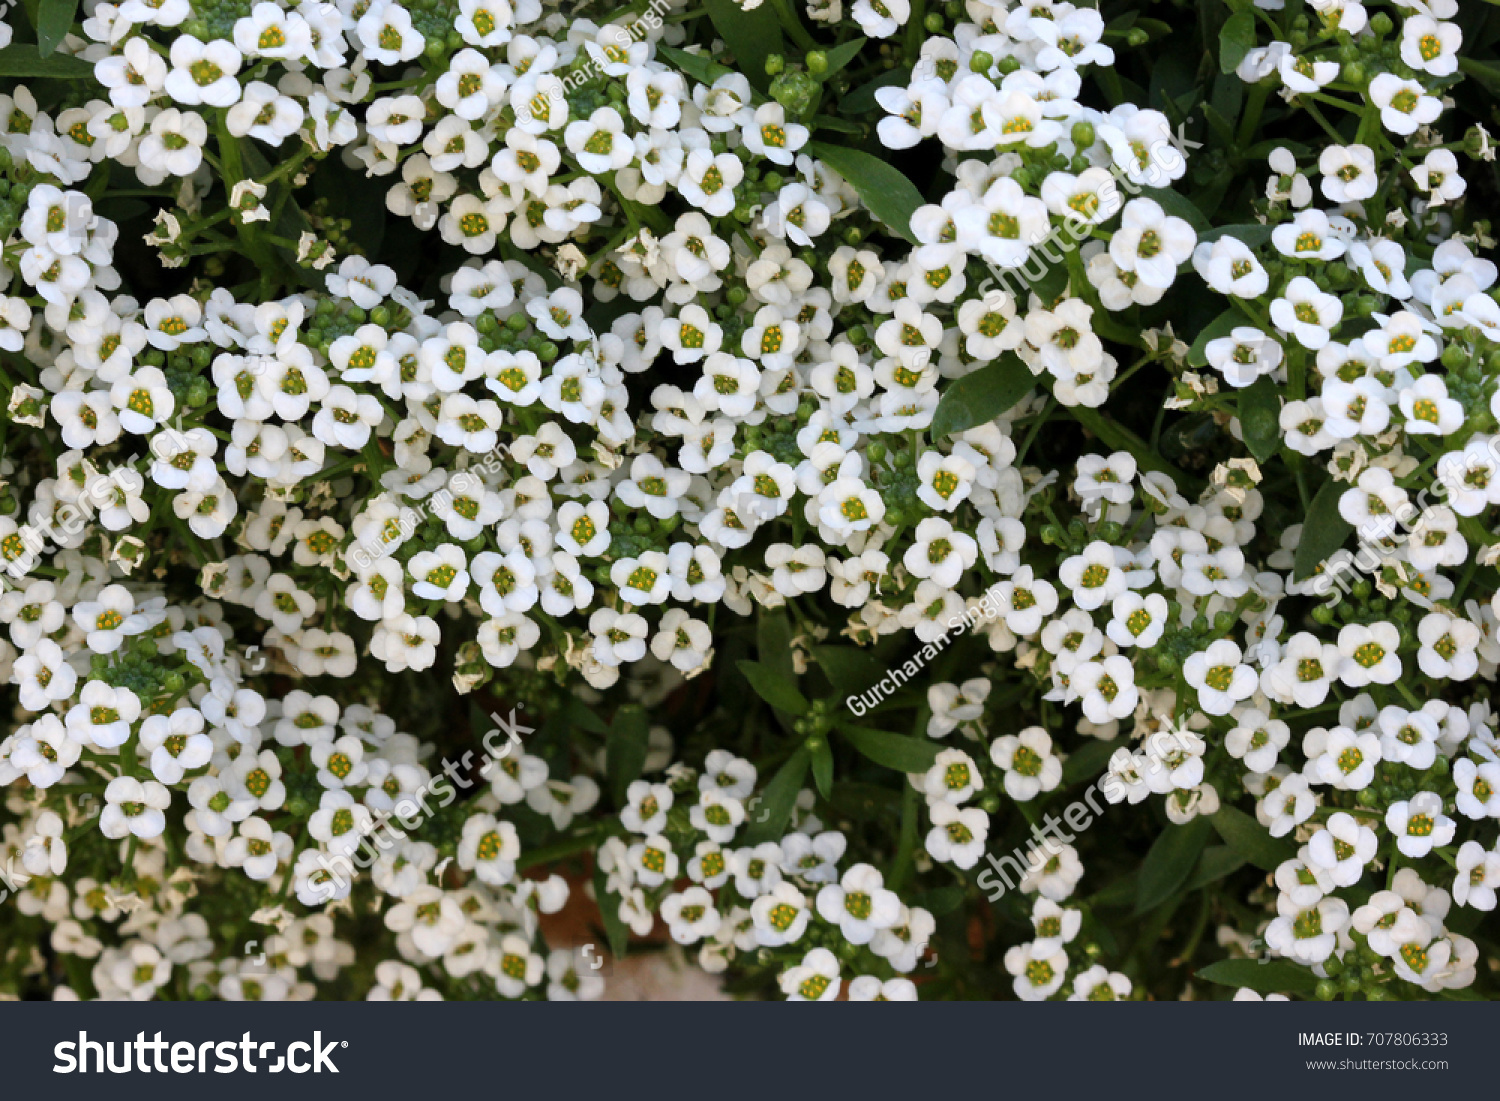 Lobularia maritima sweet alyssum sweet alison stock photo 707806333 lobularia maritima sweet alyssum sweet alison popular garden annual with small white flowers izmirmasajfo Images